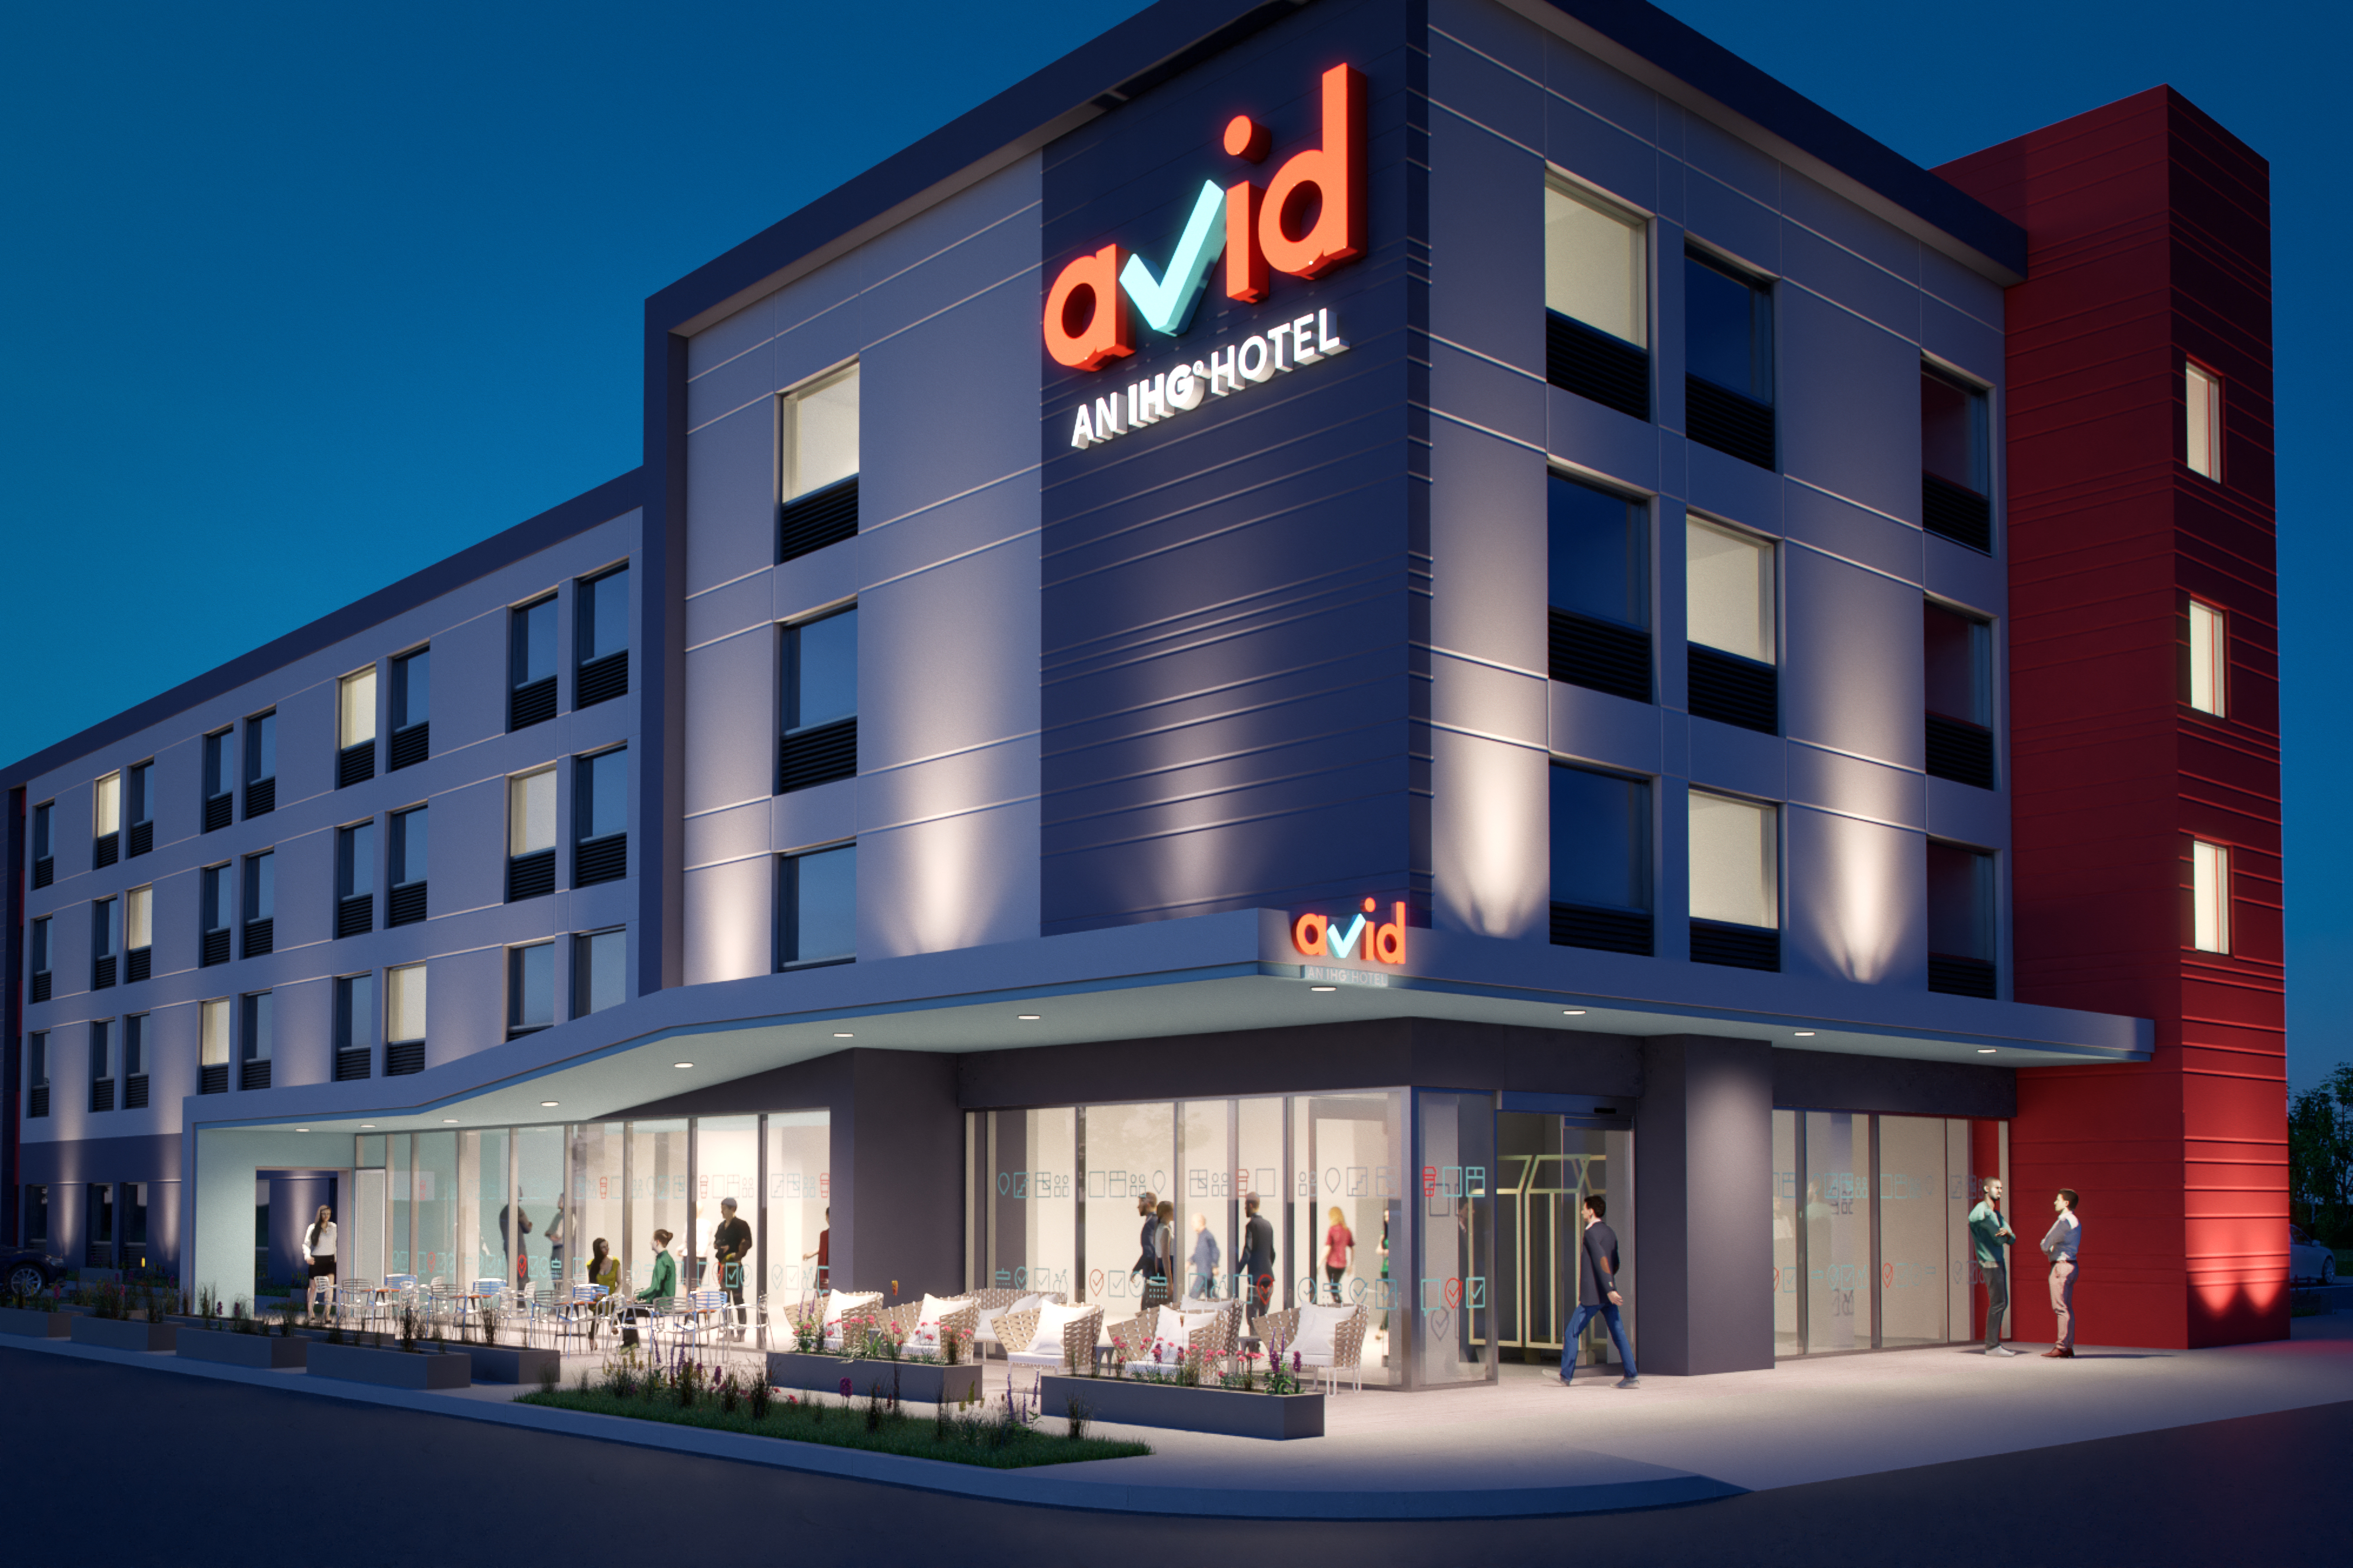 Avid, IHG's new midscale brand, is the latest project created using Agile.